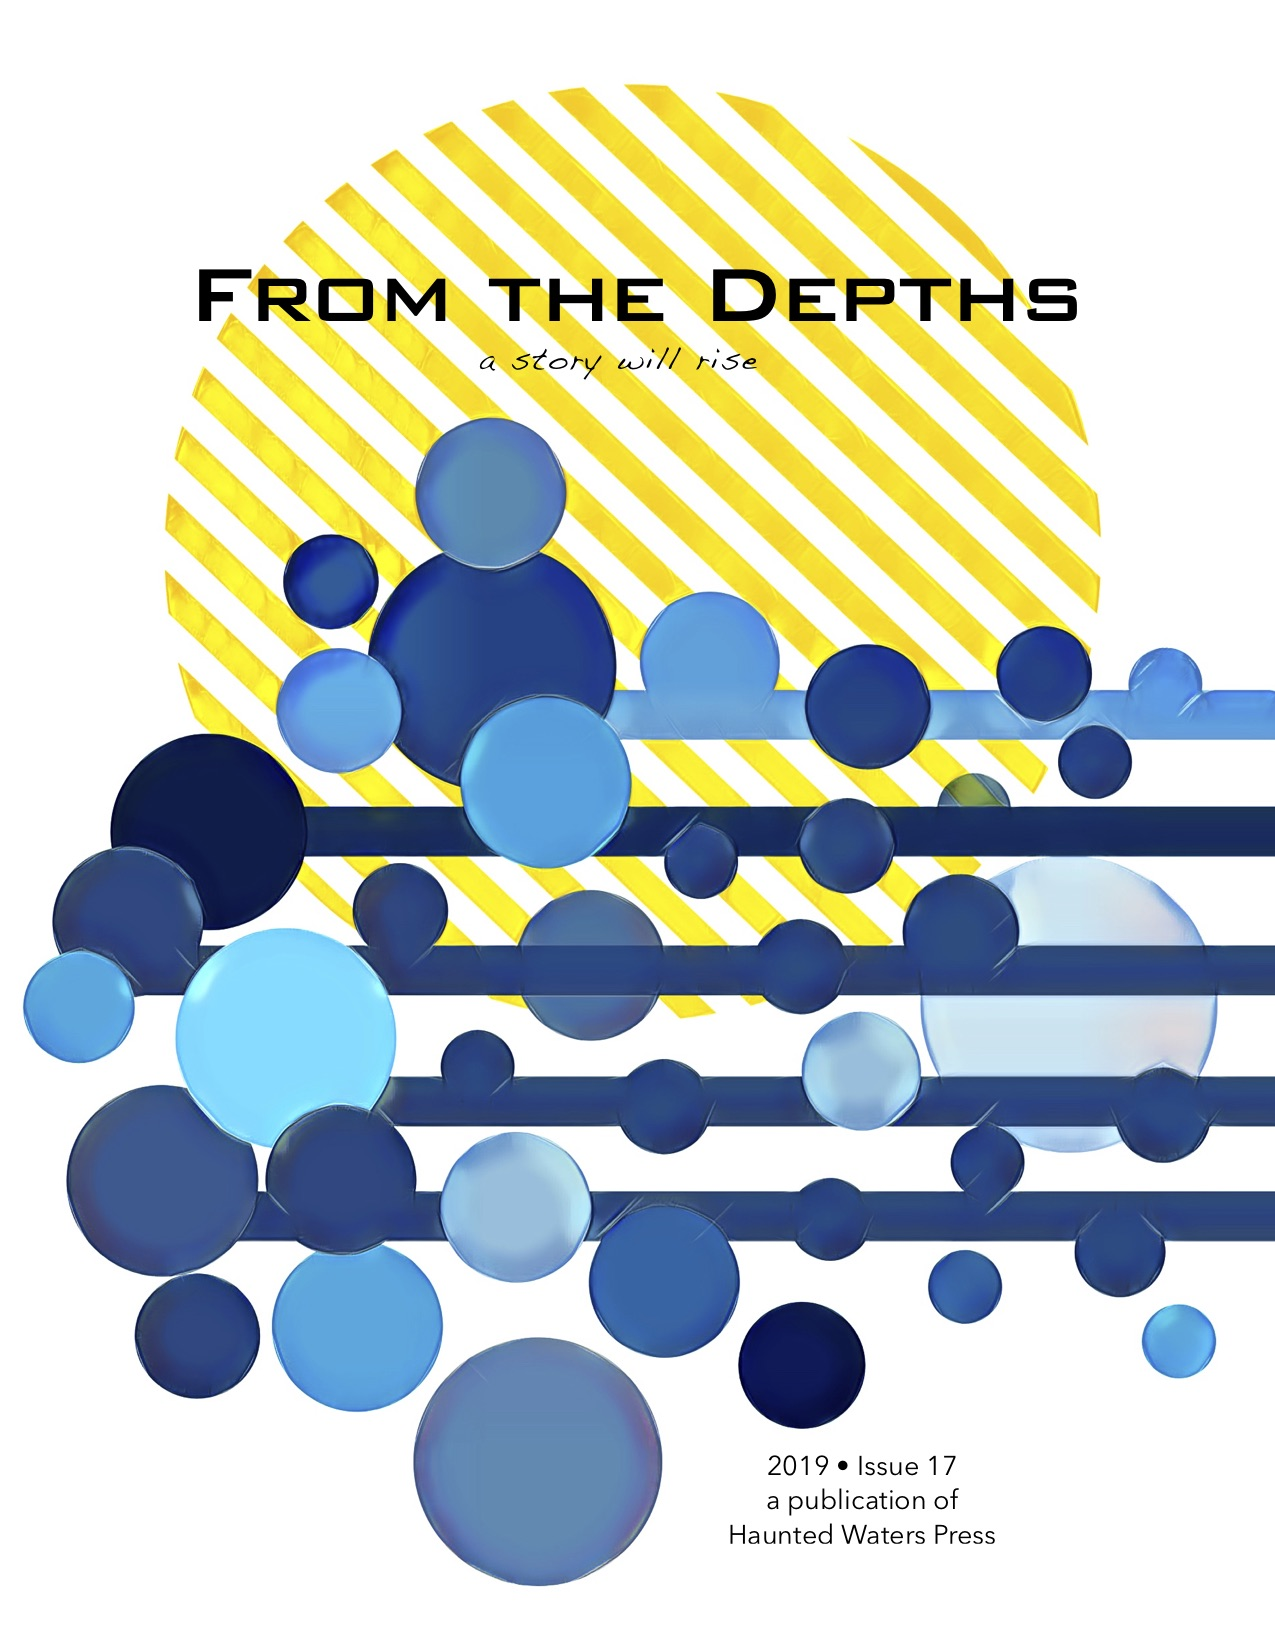 FROM THE DEPTHS 2019 No. 17